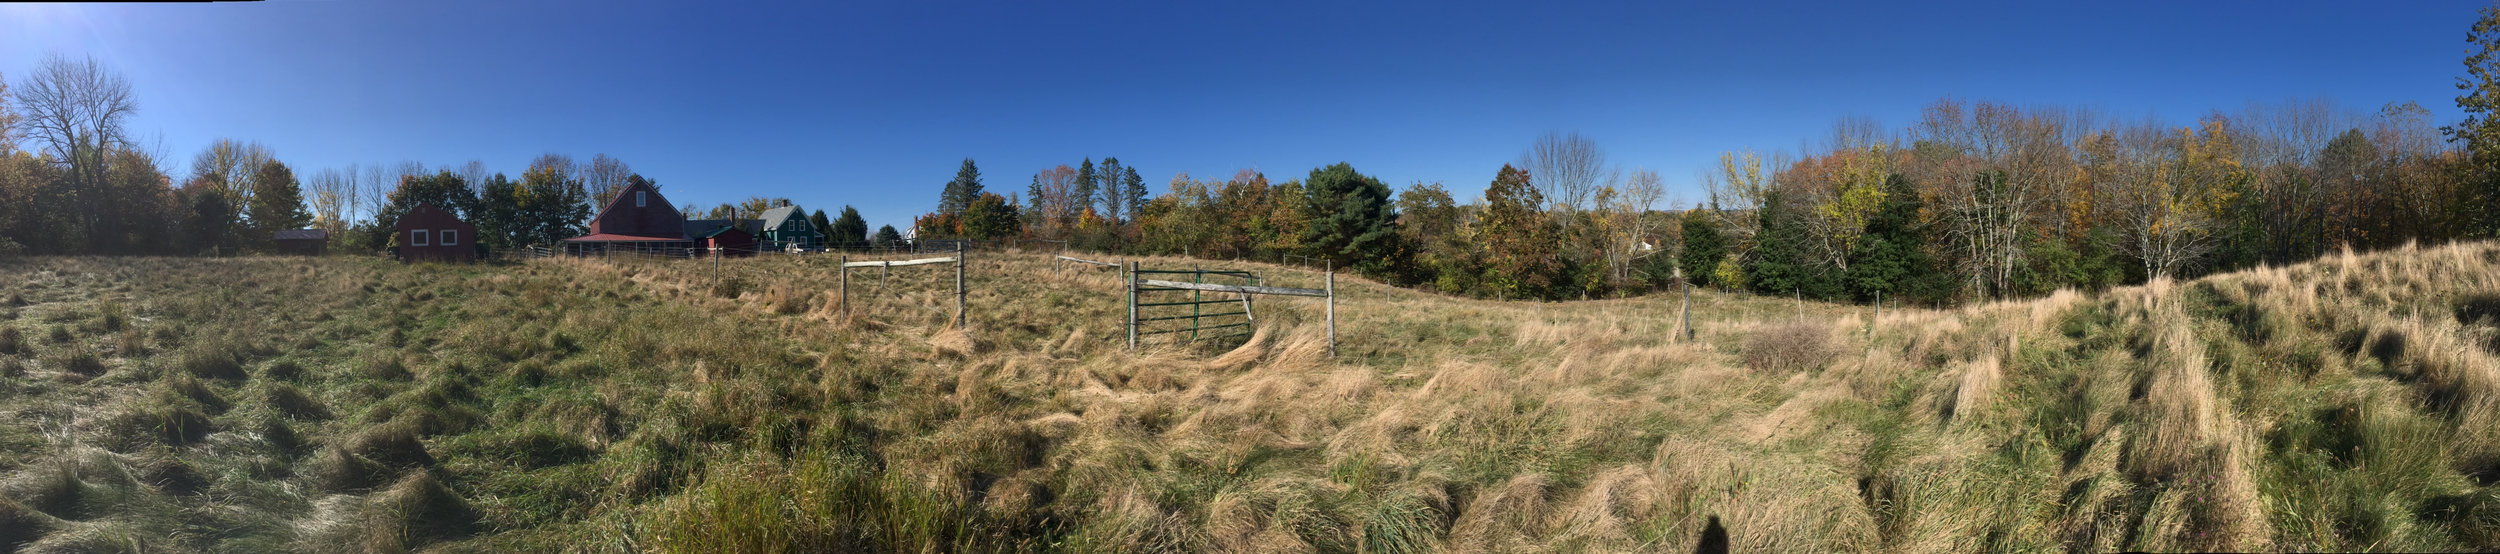 The overgrown fields before we began building the gardens.